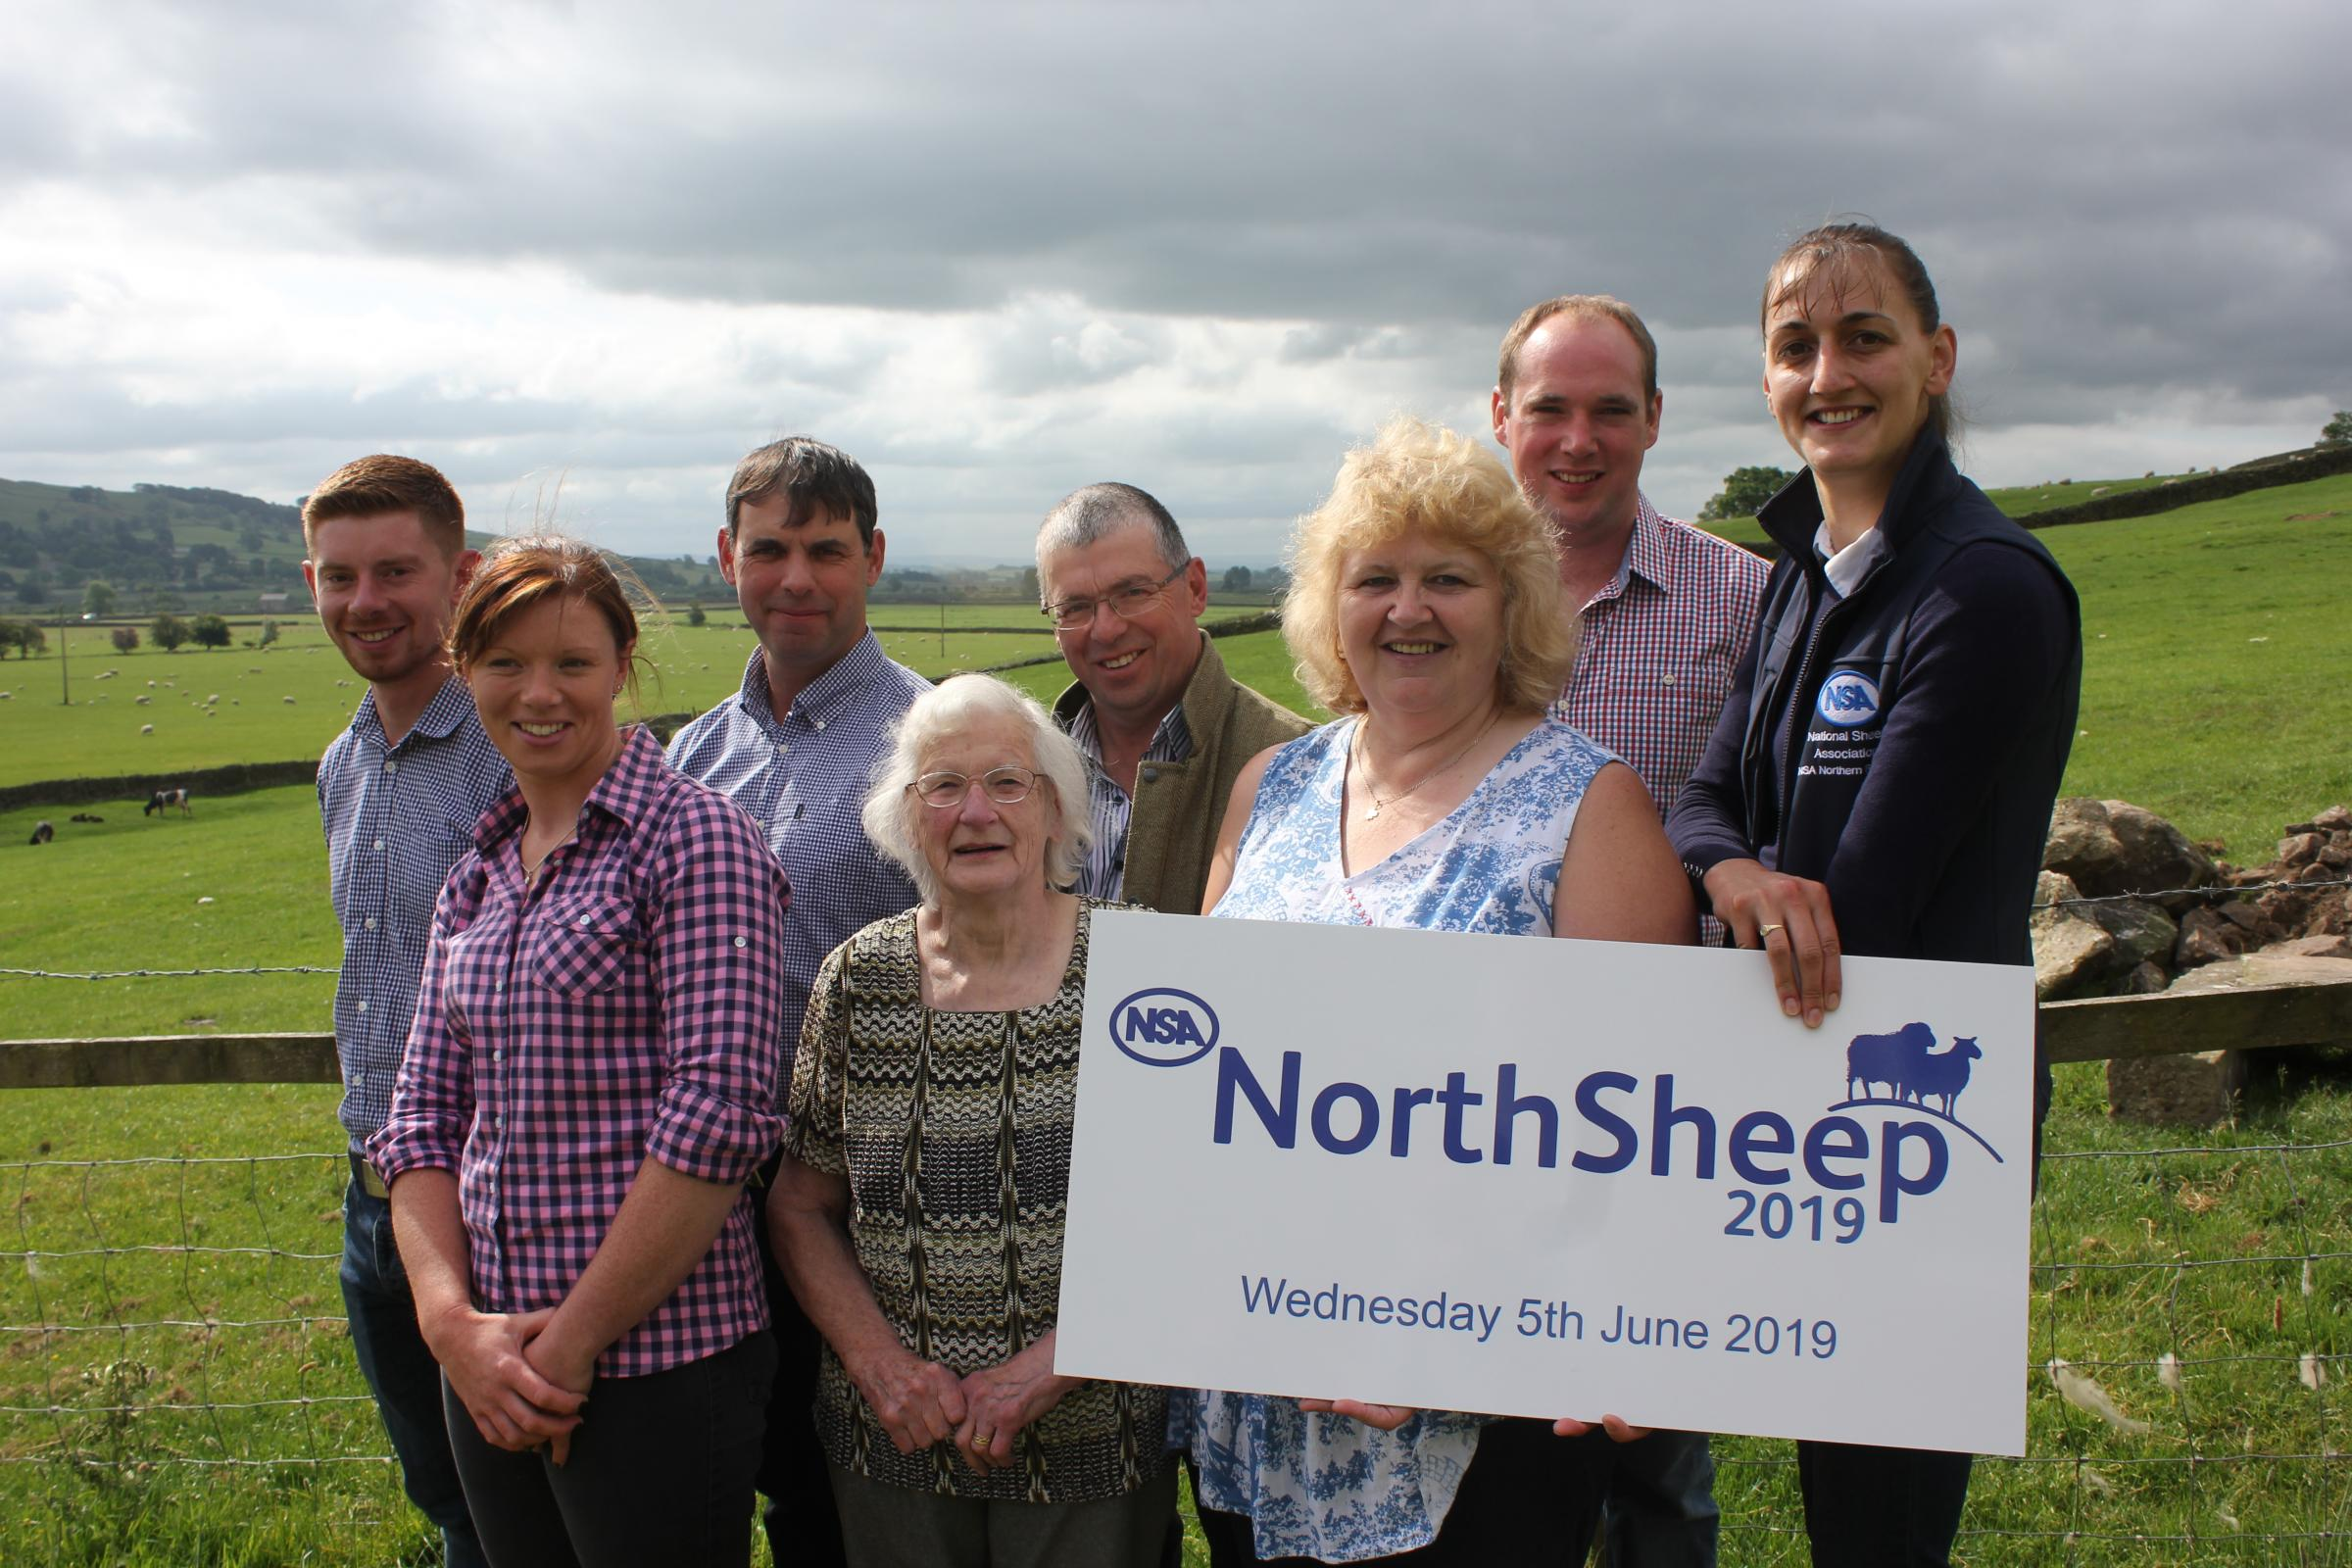 The Frankland family, of New Hall Farm, near Settle, hosts of NSA North Sheep 2019, with Heather Stoney-Grayshon, Northern regional manager and events organiser at NSA ,right